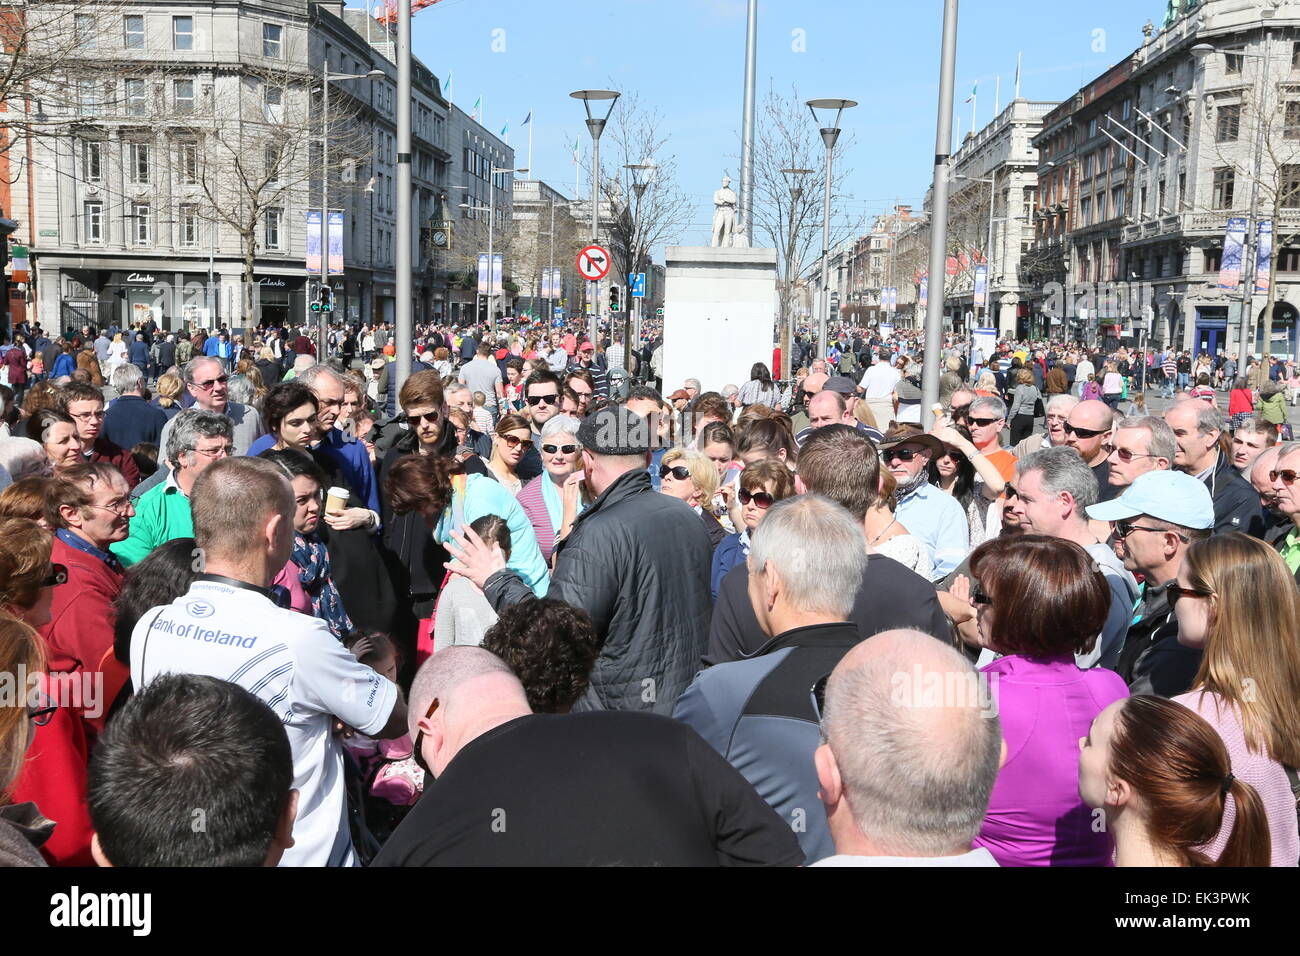 Dublin, Ireland. 06th Apr, 2015. Image from the recreation of Easter 1915 in Dublin city centre as part of the 1916 Stock Photo